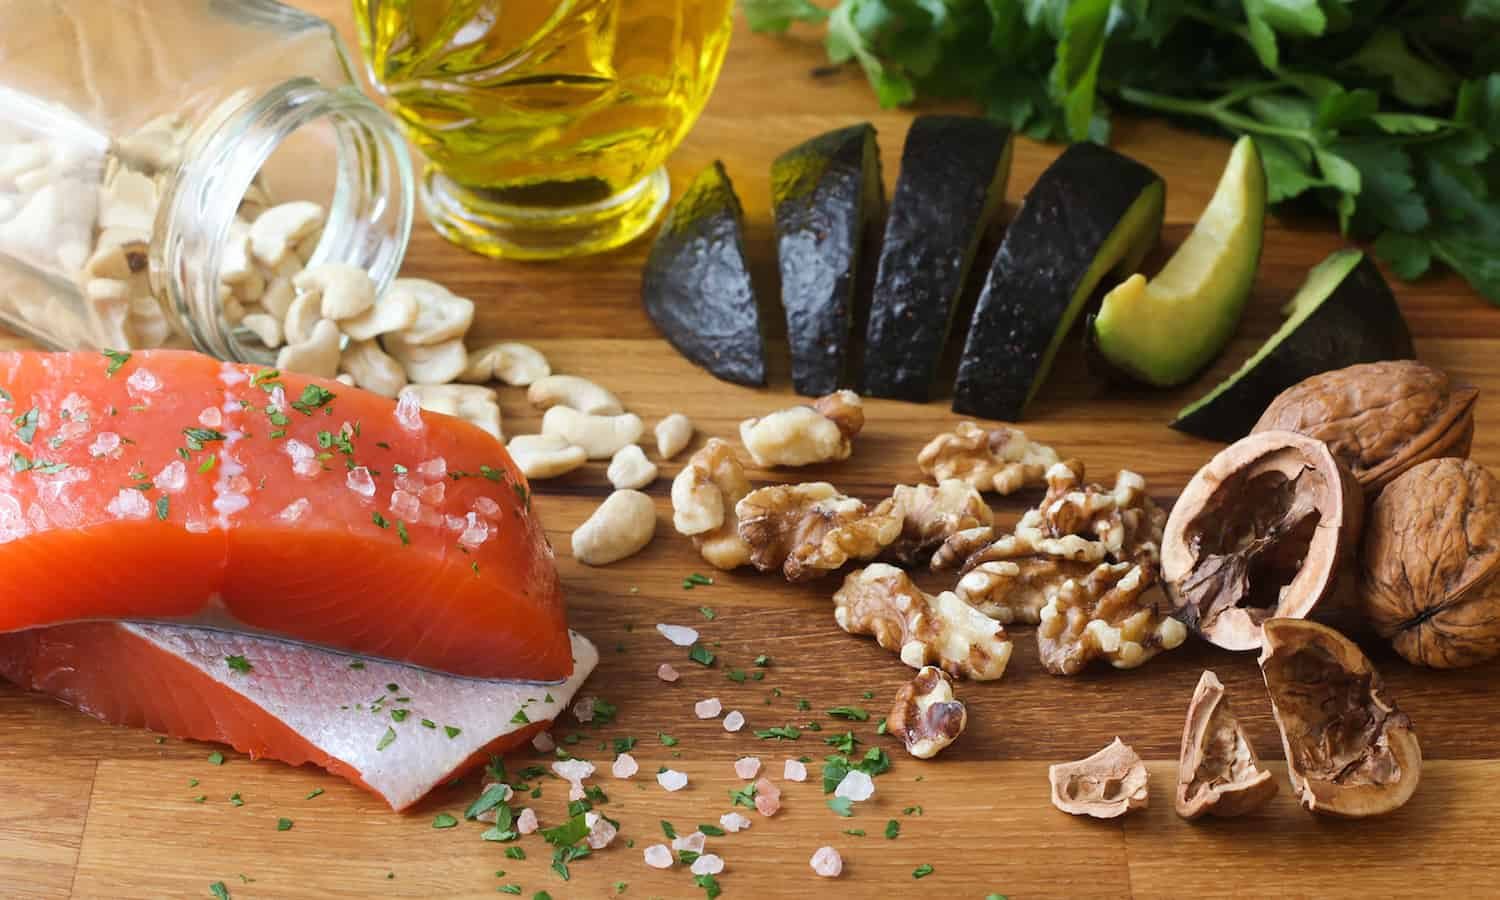 A new study shows that children who more closely follow a Mediterranean-style diet are more likely to exhibit other healthy behaviors and outcomes.